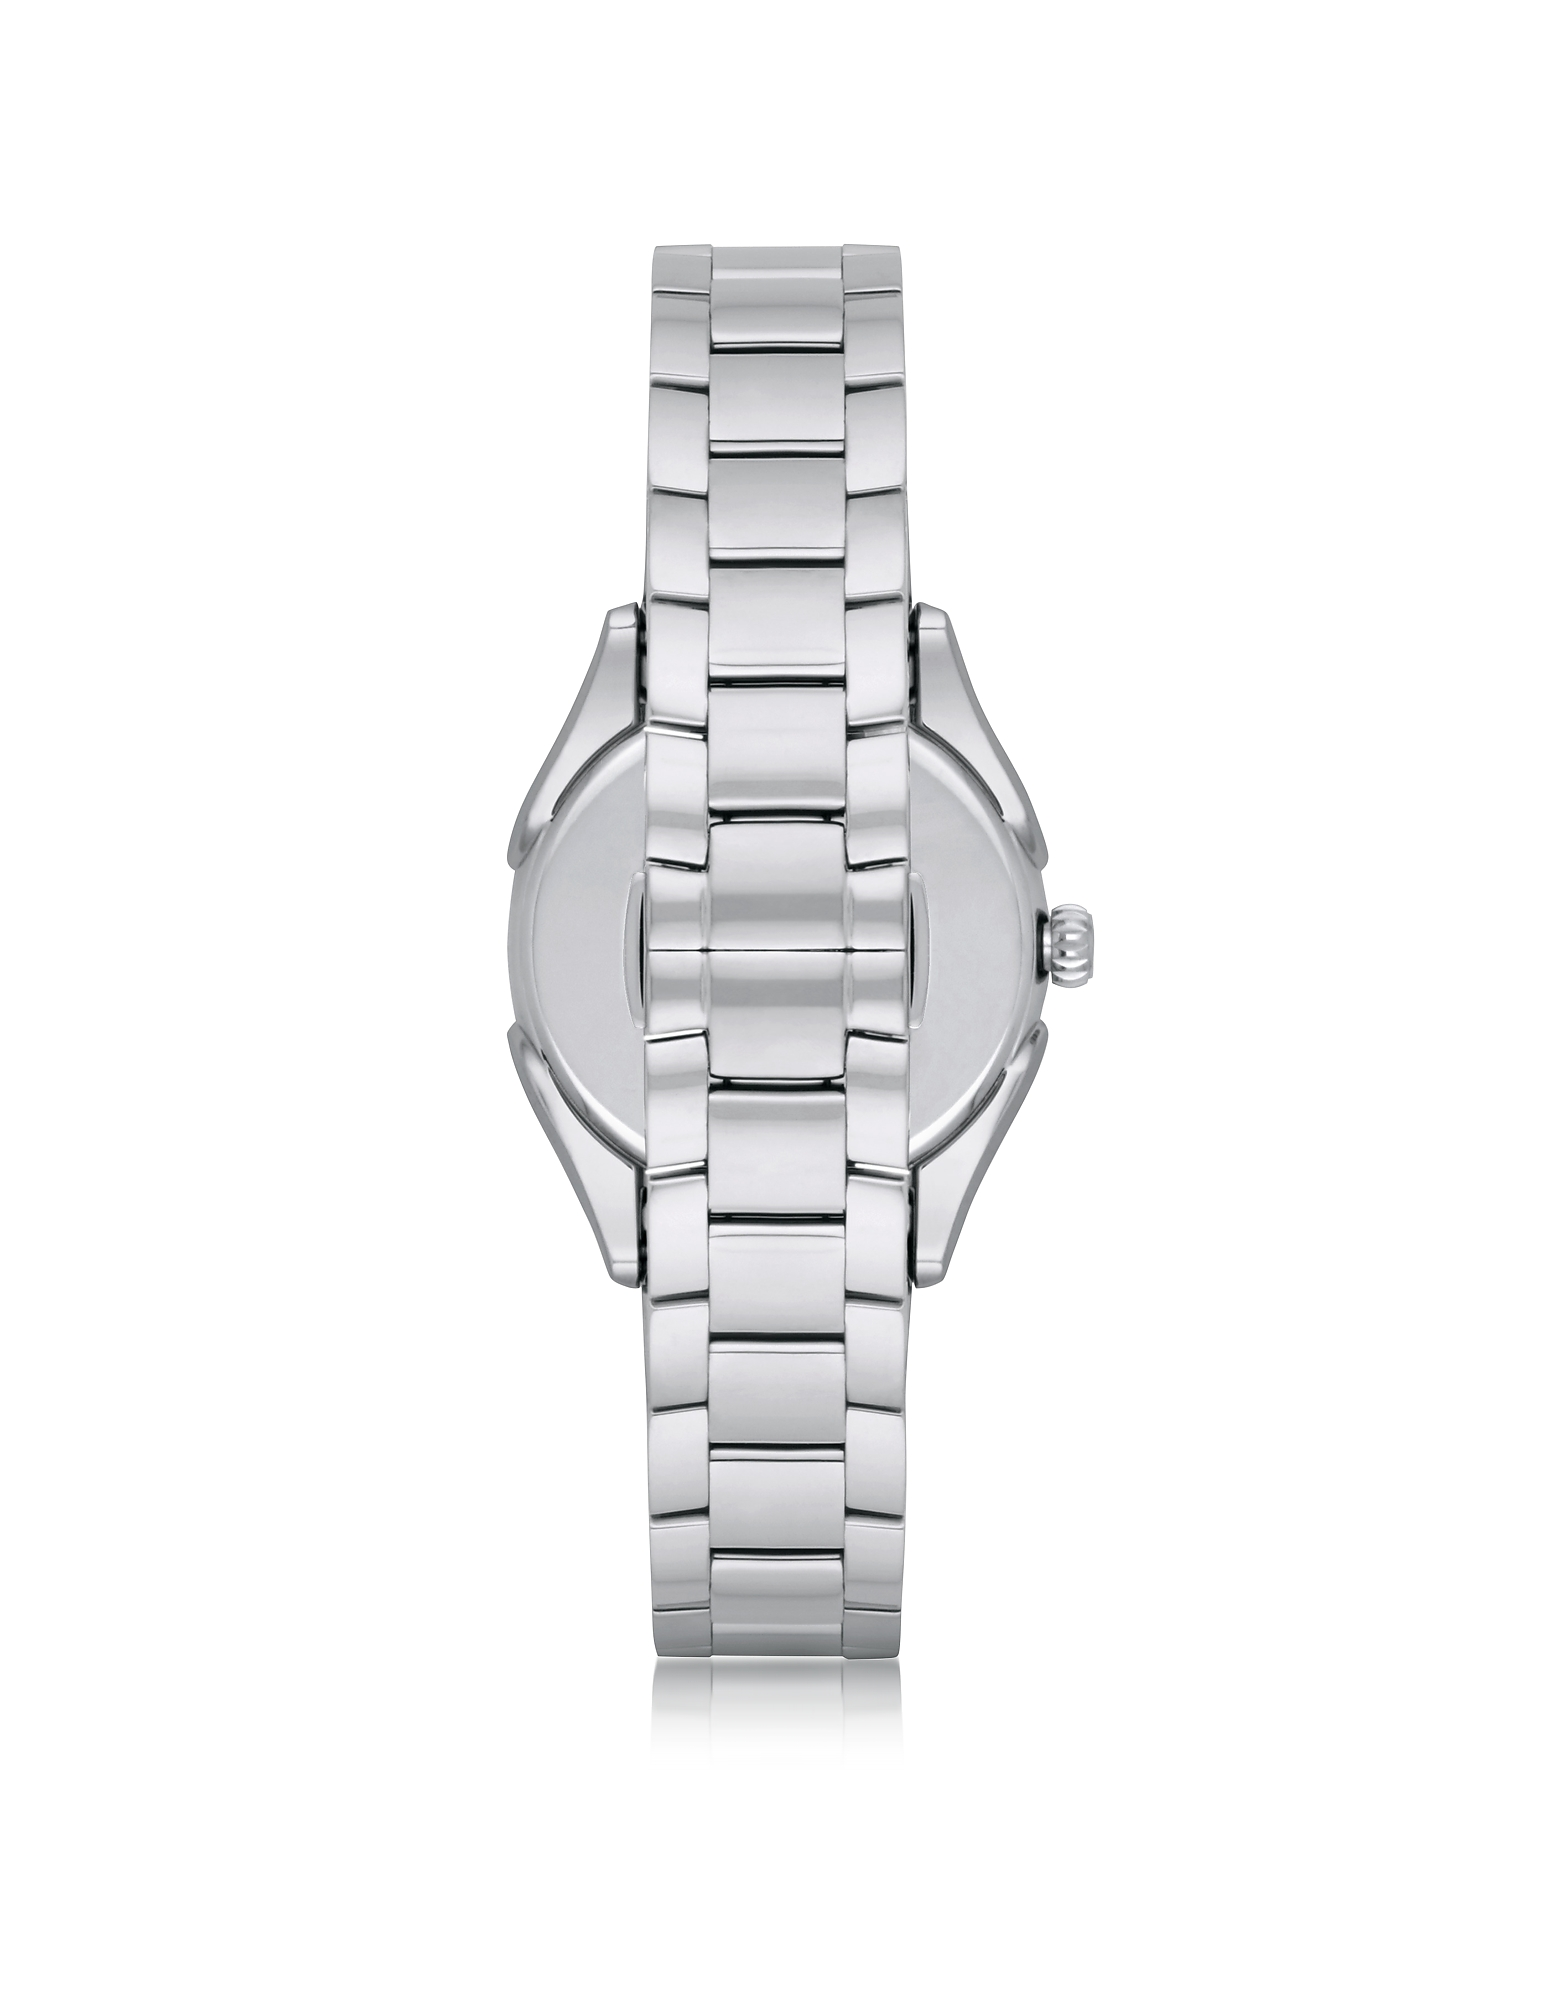 Stainless Steel Women's Quartz Watch w/Mother of Pearl Signature Dial от Forzieri.com INT